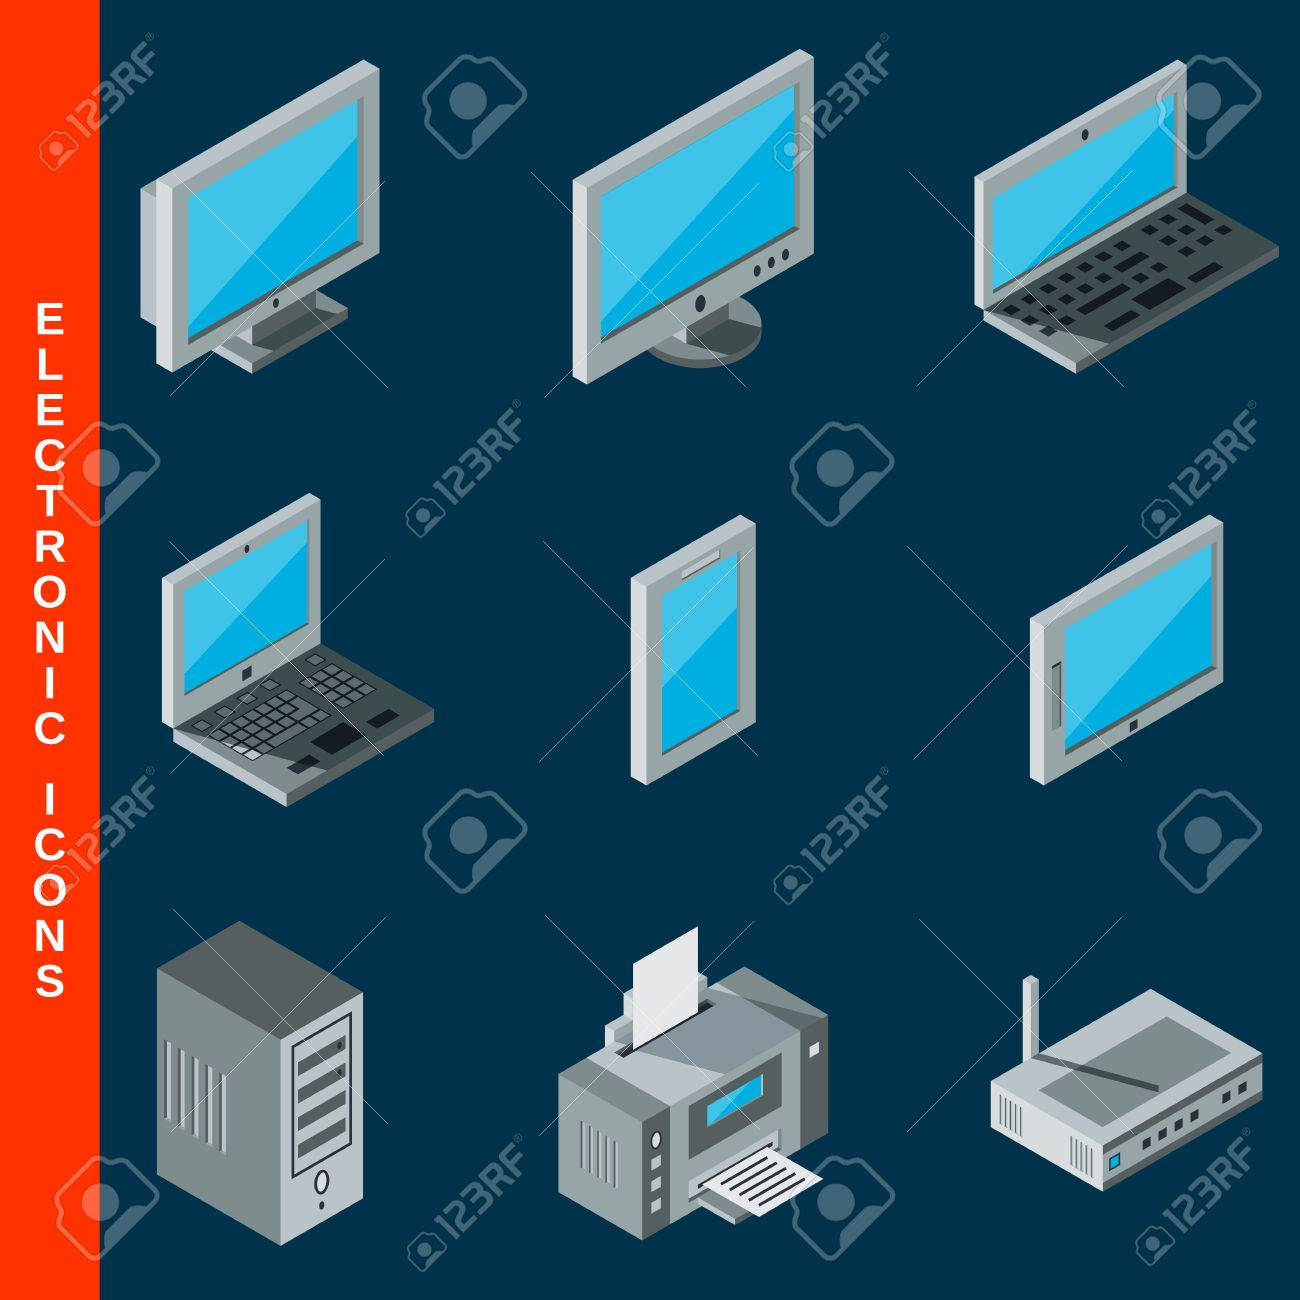 isometric flat 3d computer equipment icons set royalty free cliparts